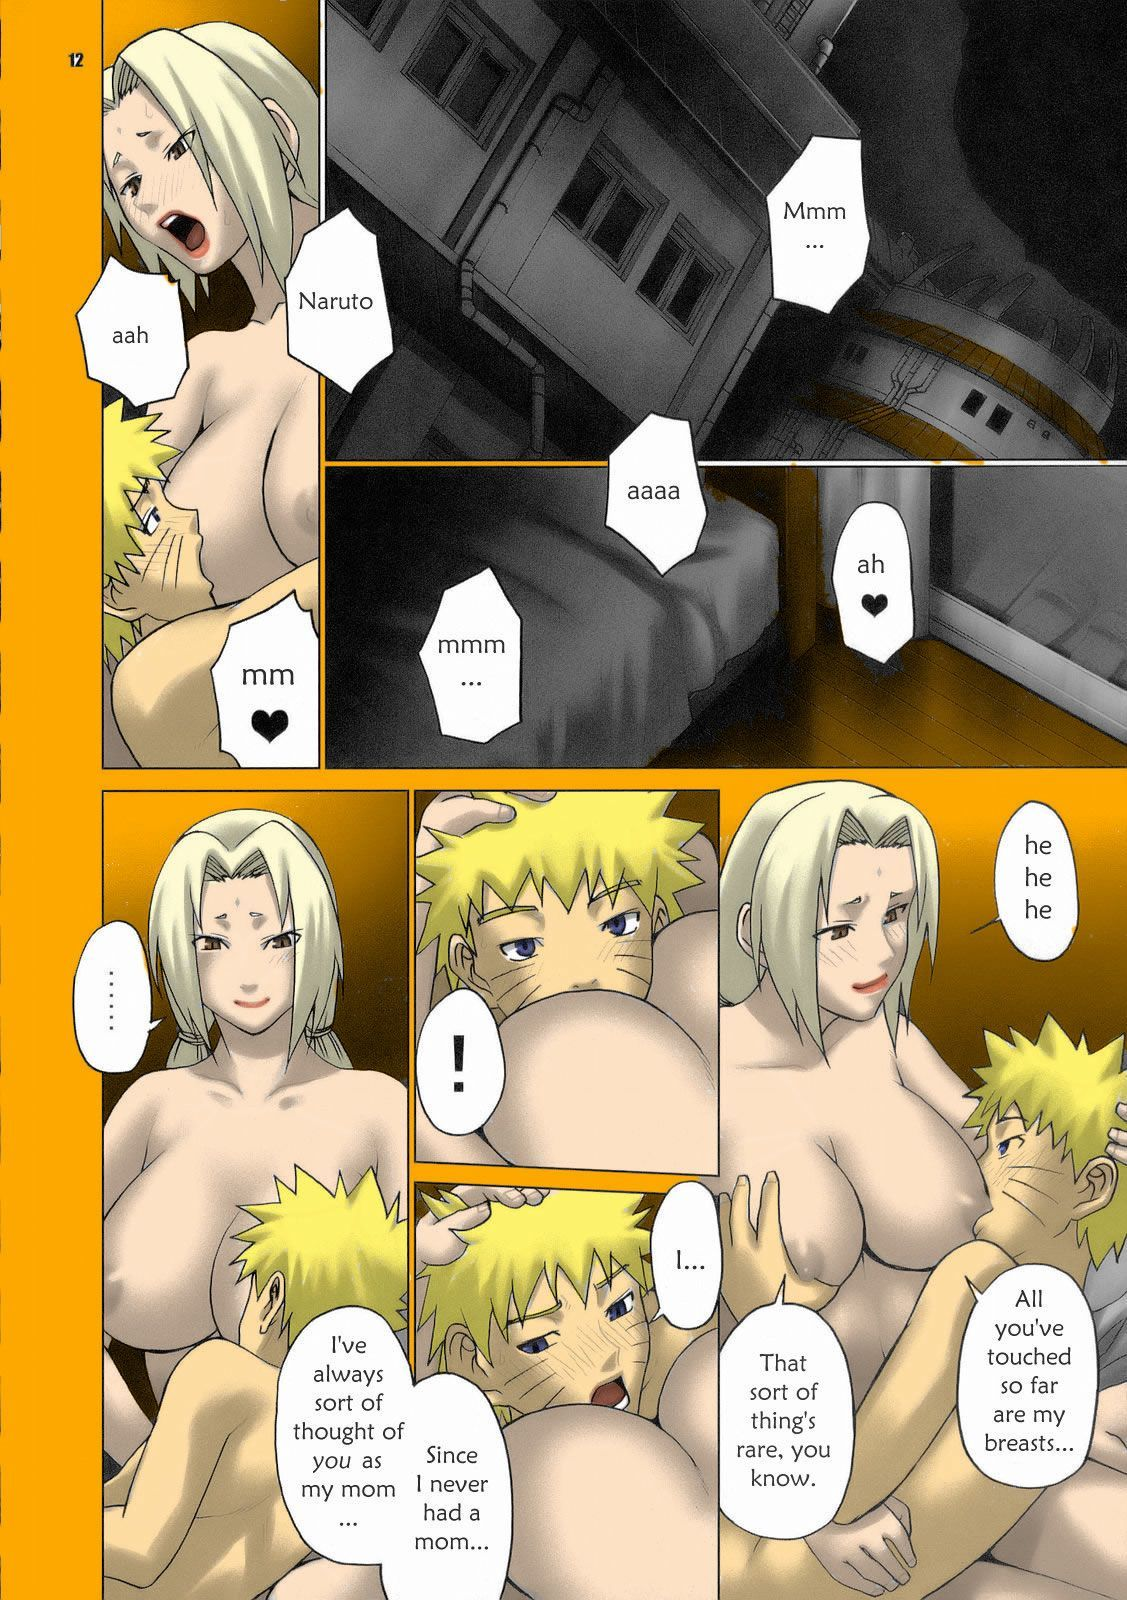 naruto loop and loop hentai comics